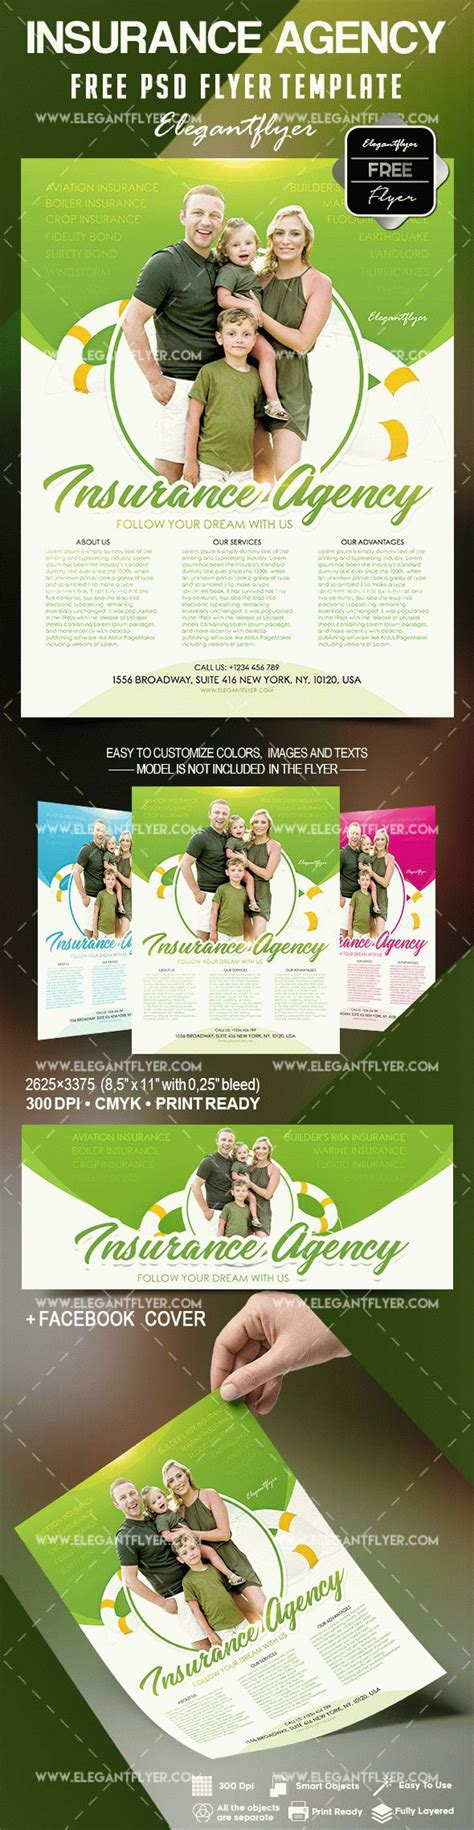 Free Insurance Agency Flyer Template By Elegantflyer Insurance Flyer Templates